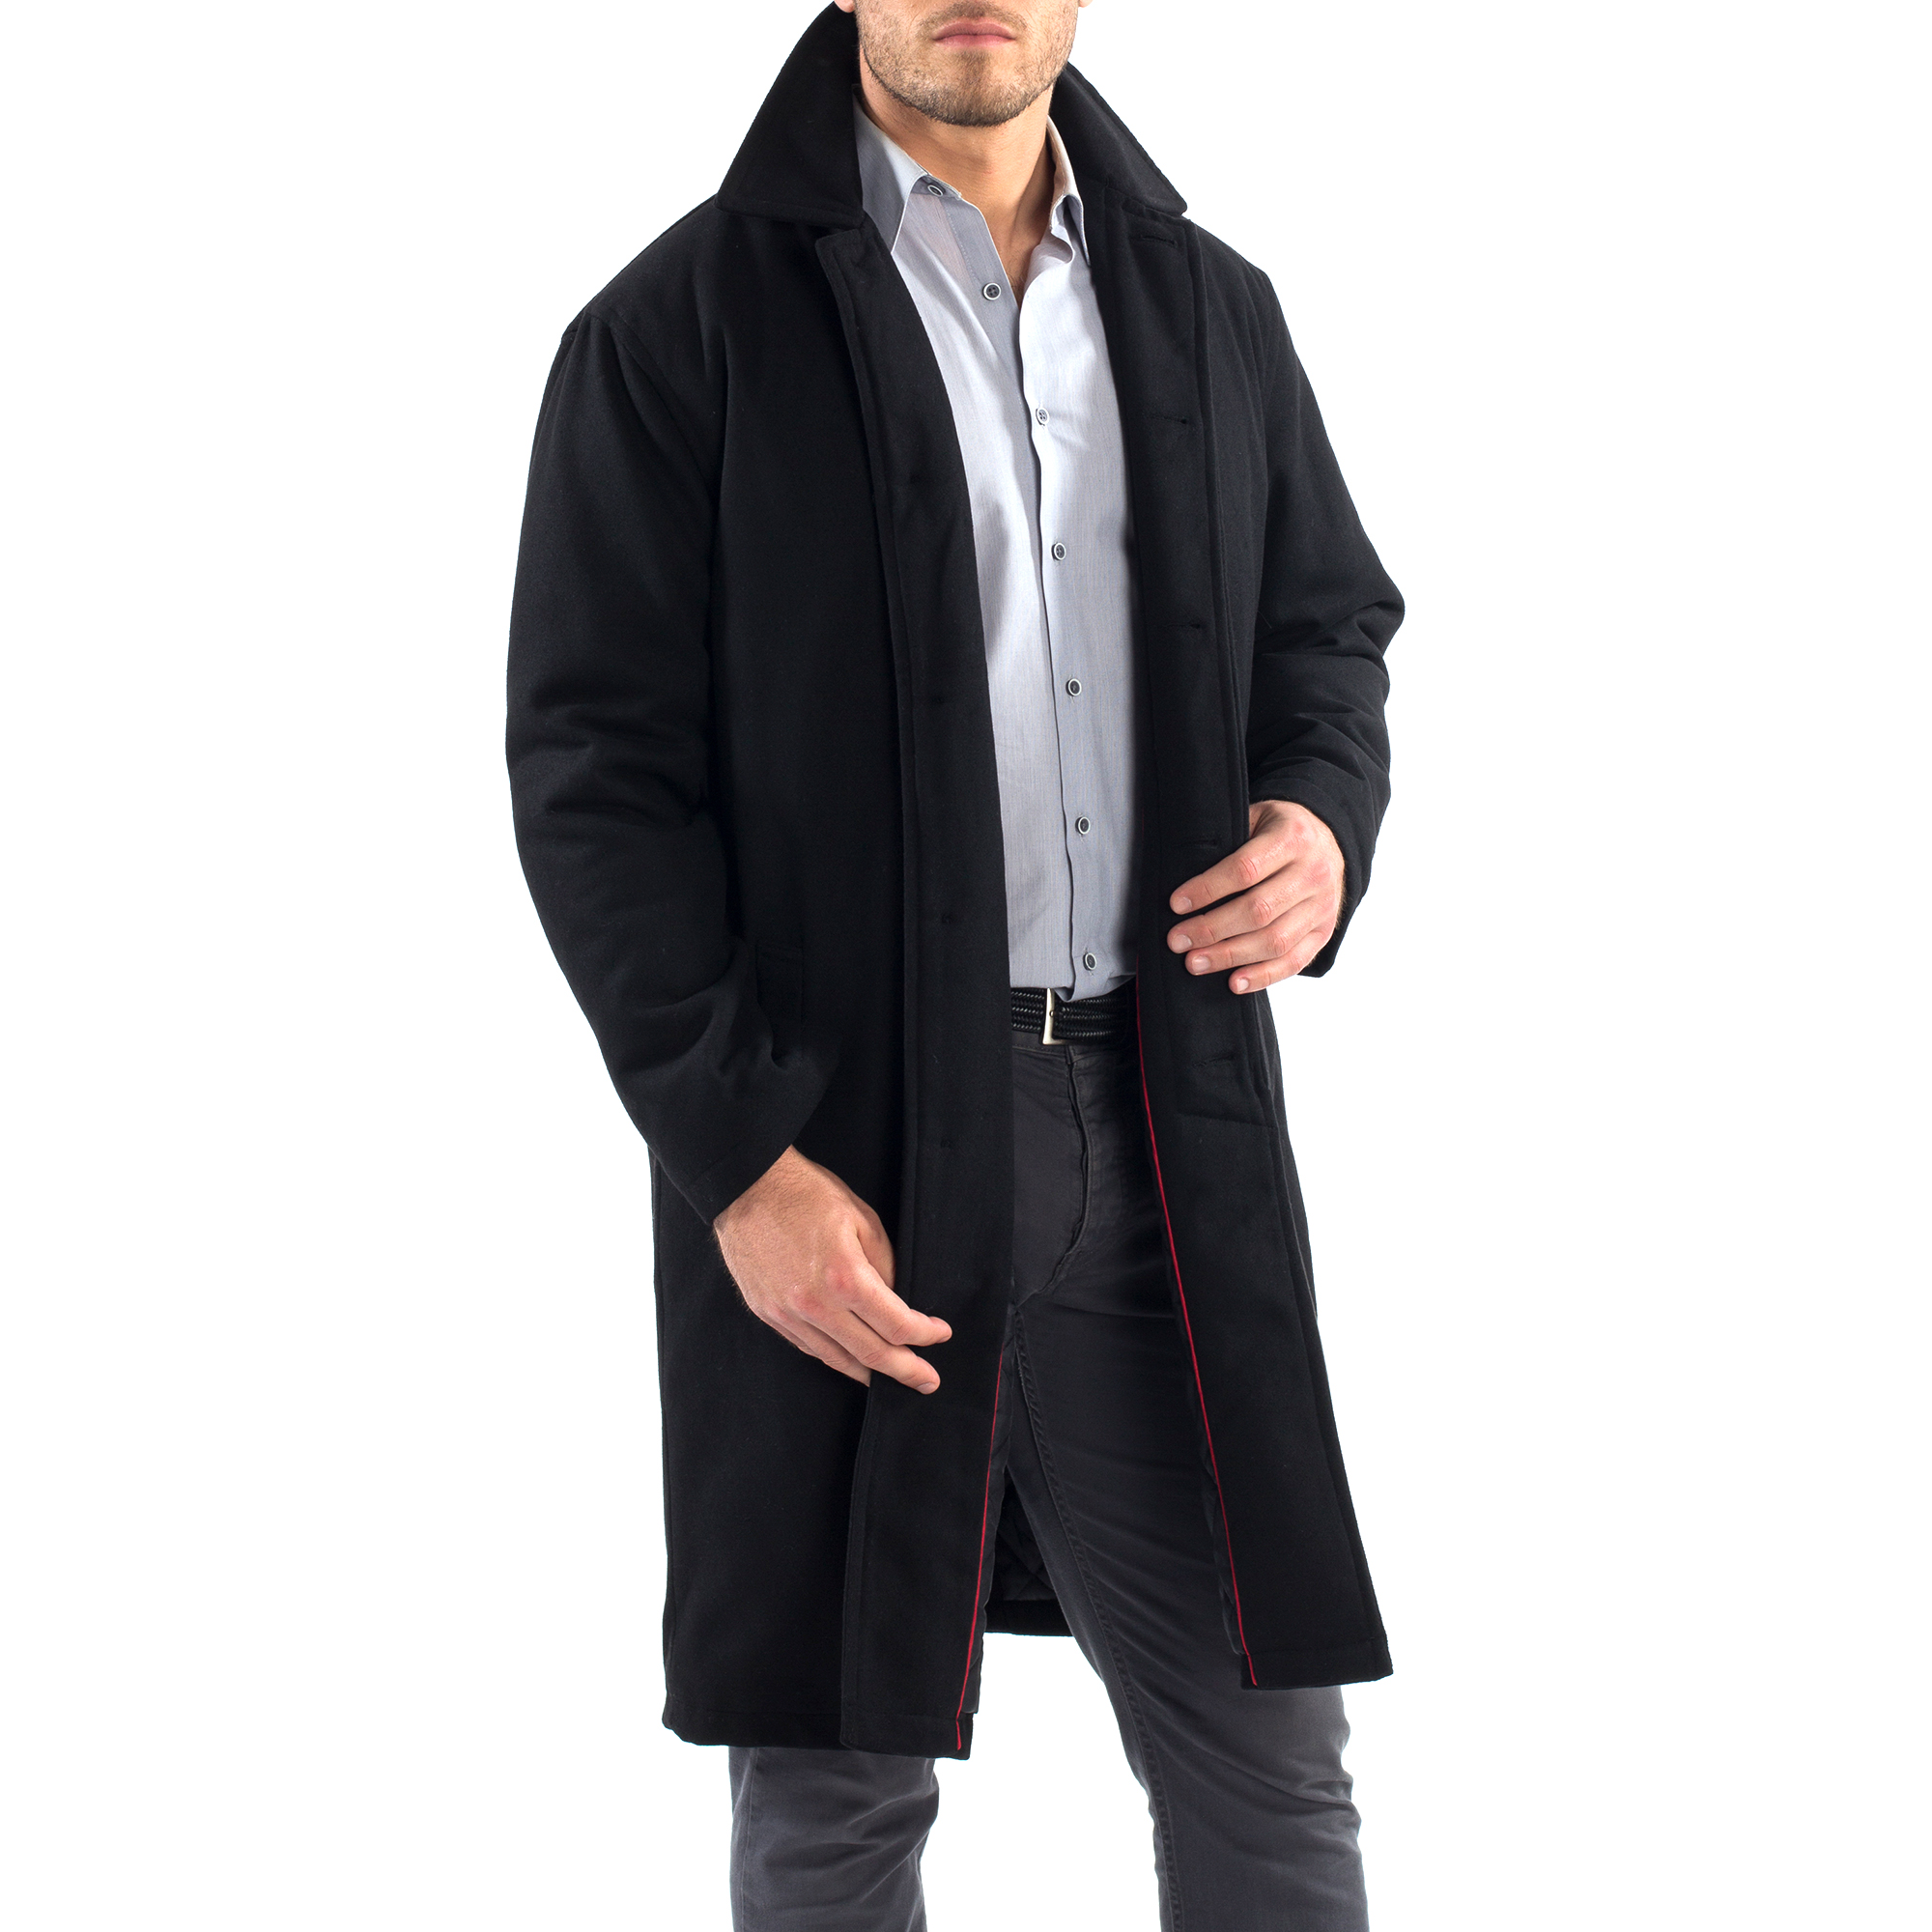 Alpine-Swiss-Mens-Zach-Knee-Length-Jacket-Top-Coat-Trench-Wool-Blend-Overcoat thumbnail 17